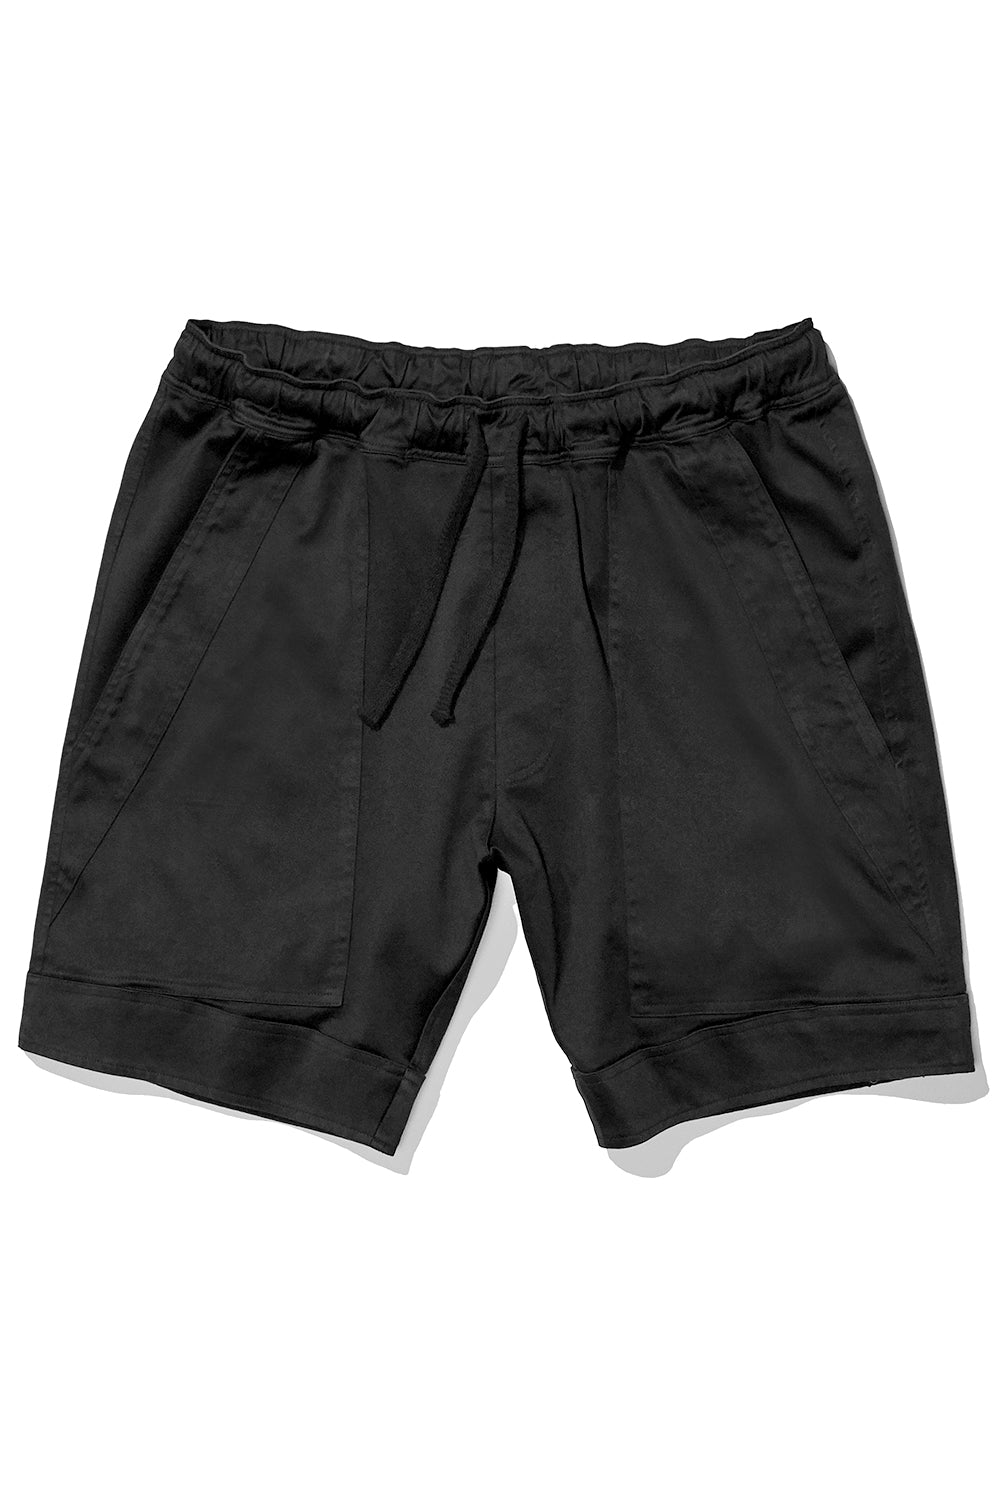 NOIR ANALOG SHORT